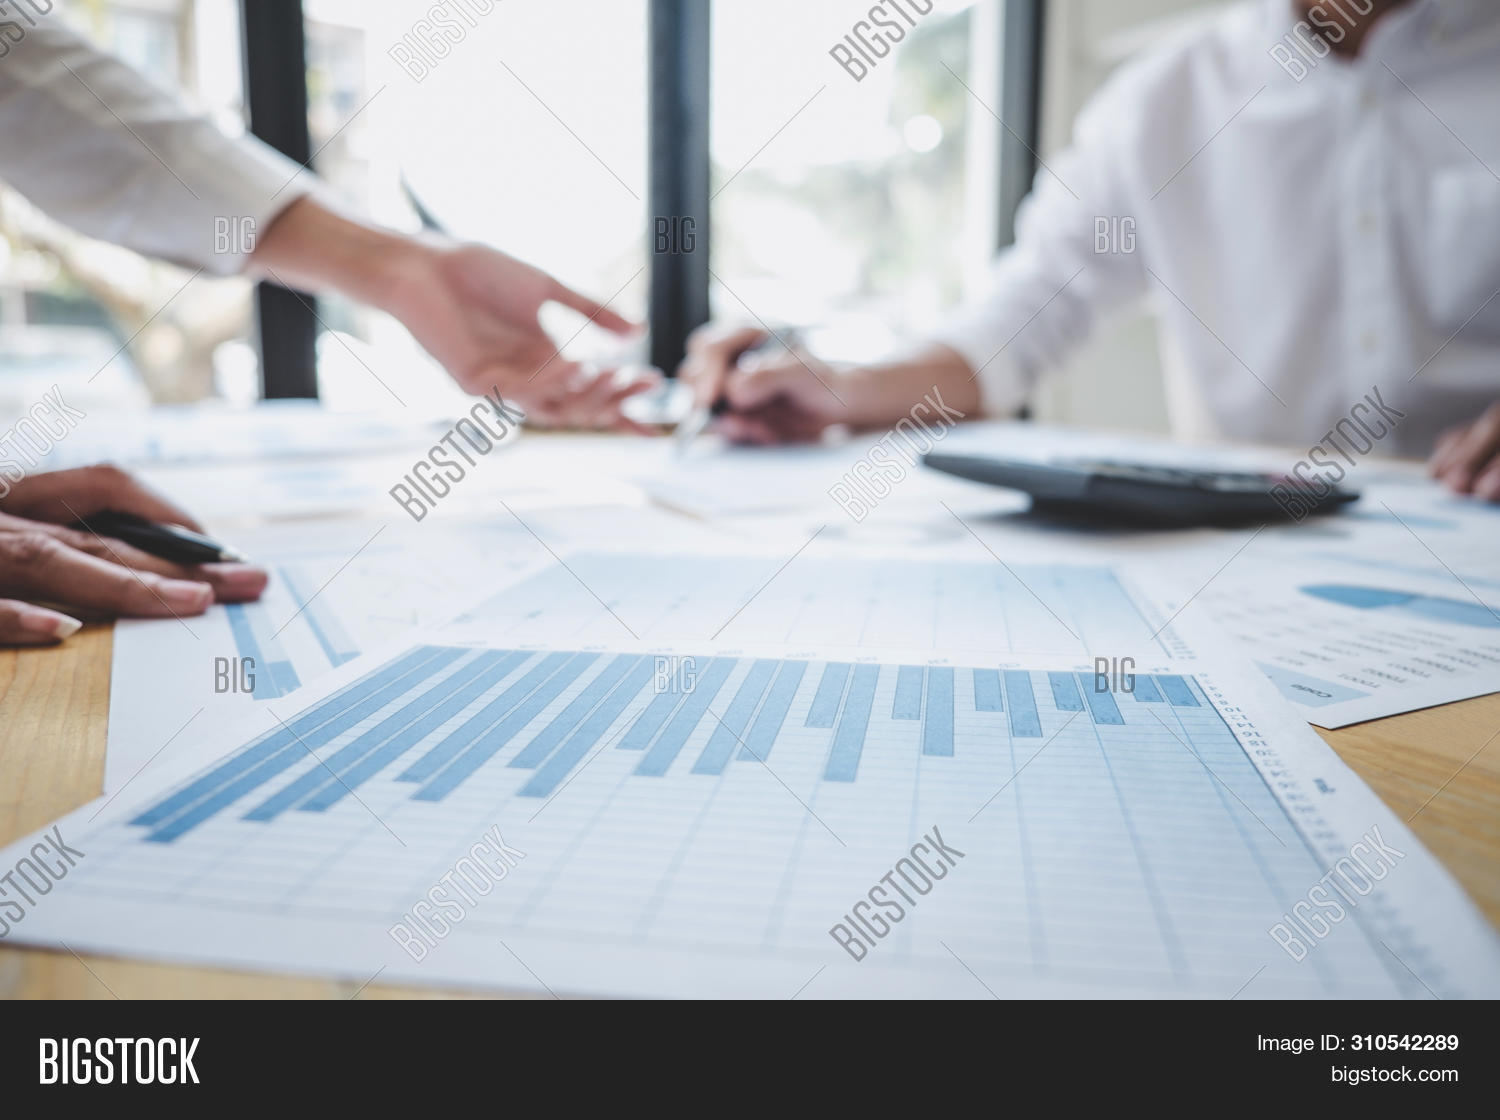 accounting,brainstorming,briefing,business,businessman,calculation,calculator,chart,colleagues,communication,conference,consultation,cooperation,corporate,coworker,creative,designer,discussion,economic,executive,explaining,finance,financial,financier,graph,growth,hand,ideas,investment,management,manager,marketing,meeting,partnership,payment,people,plan,professional,project,statistics,strategy,success,talking,tax,team,teamwork,technology,two,working,workplace